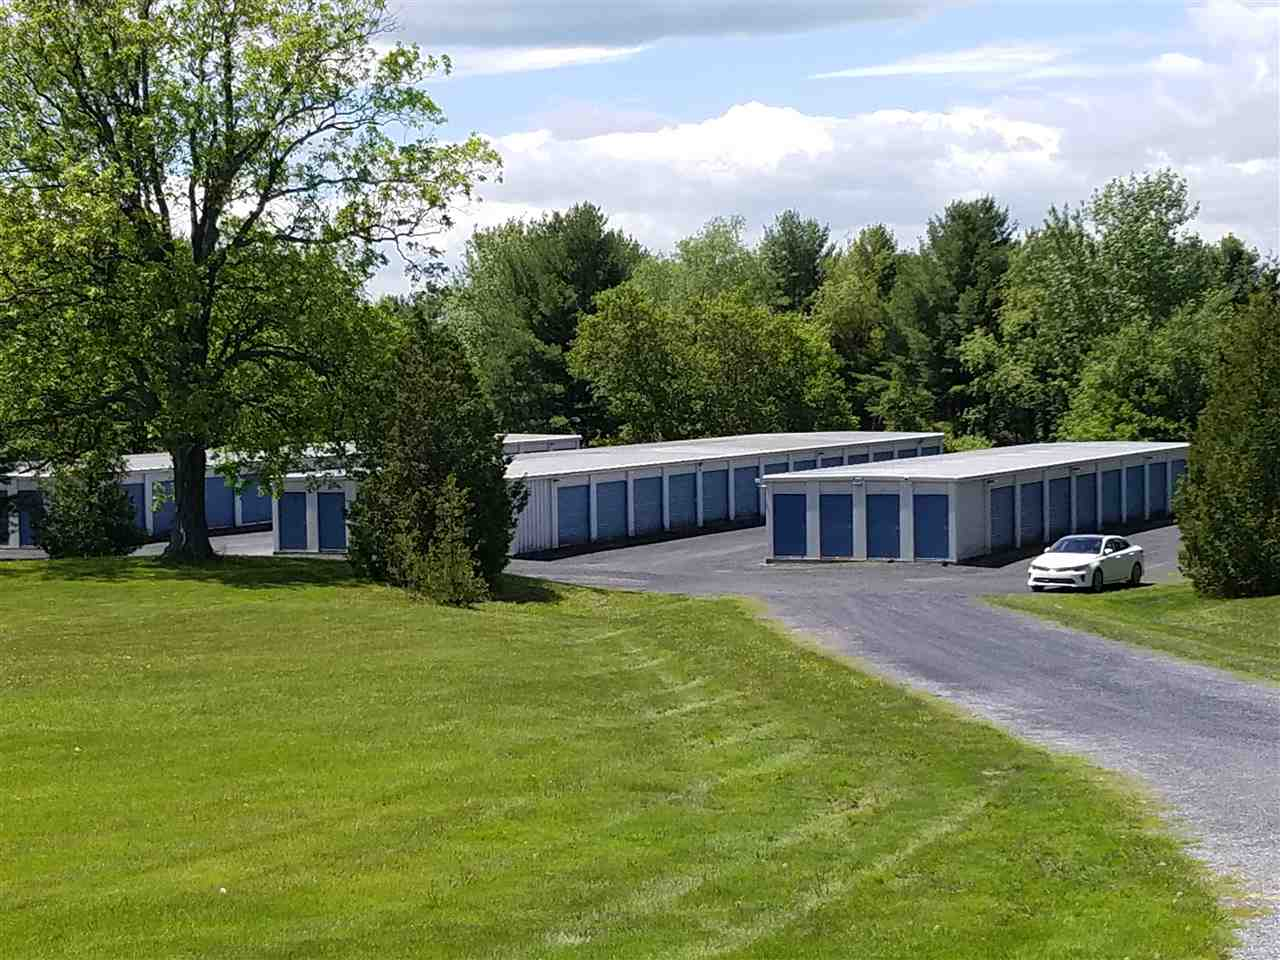 An opportunity to own a well established and attractive storage facility on one of the most traveled roads in the state.  It is visible, yet well landscaped.  The large lot allows for future expansion or other commercial uses.  Note that 1 - 20 x 30 unit is not listed on the rate sheet as currently available for rent; it is used by a former owner , but per the Deed, it must be vacated upon sale and would become available to rent increasing the Gross Income.